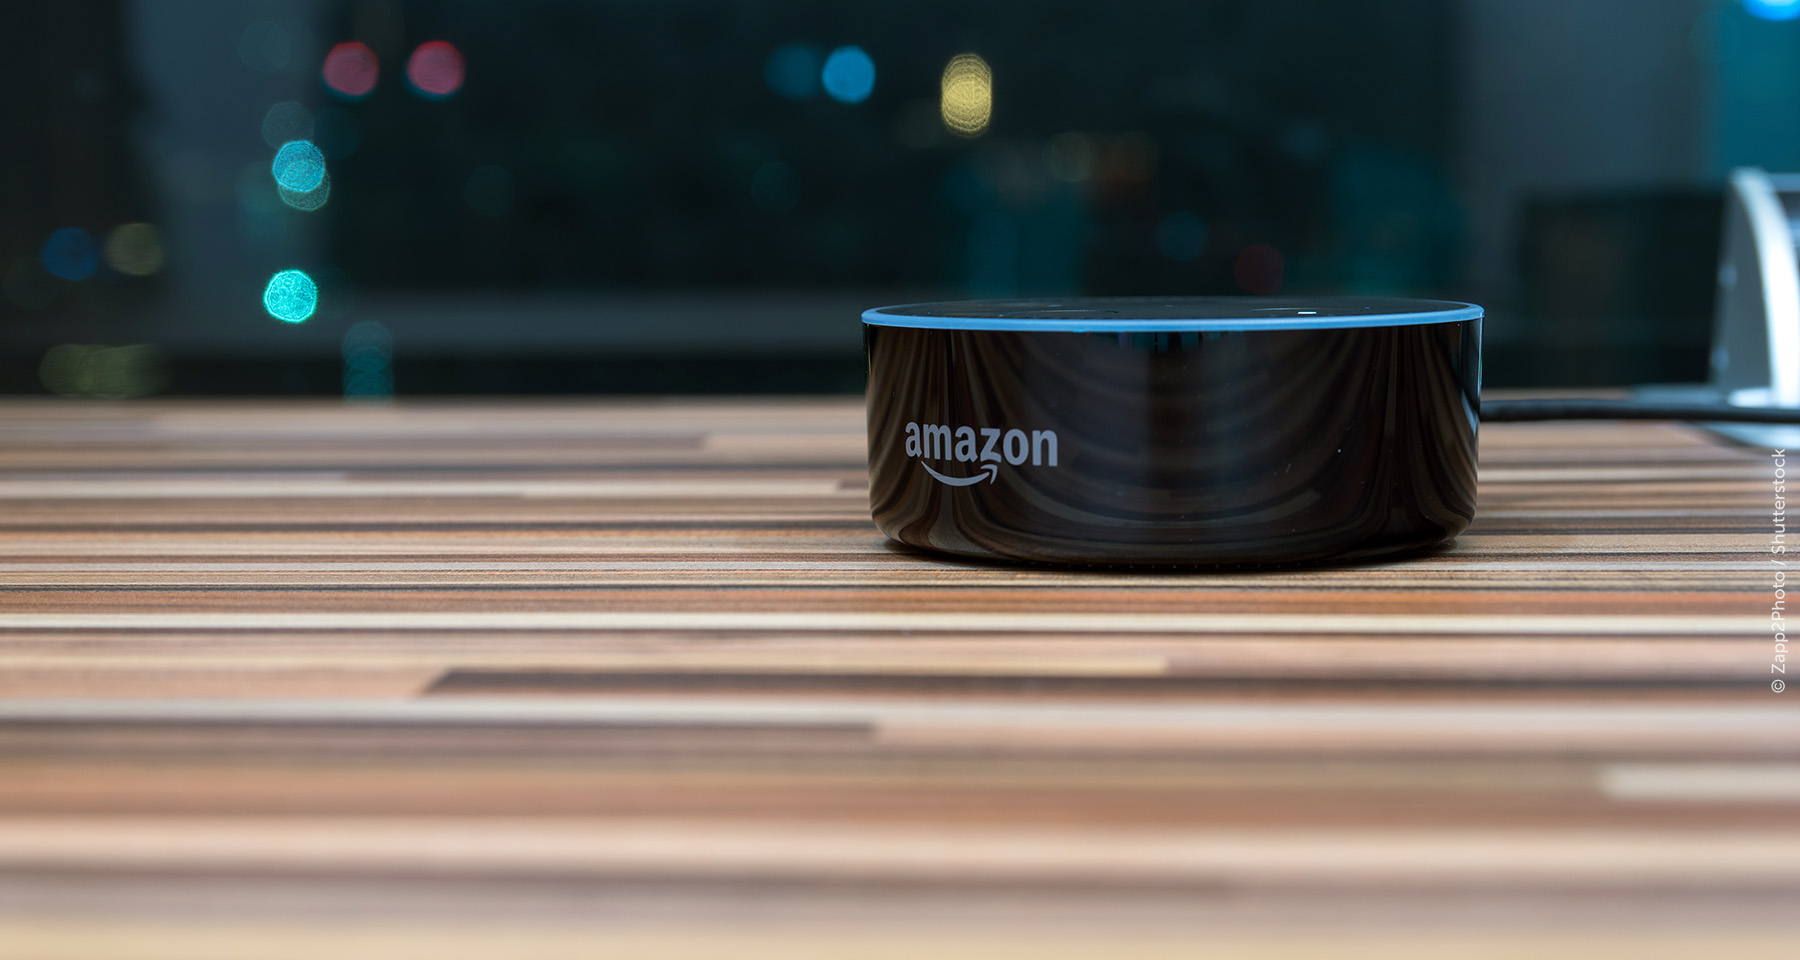 20 Minutes launches Alexa news experience